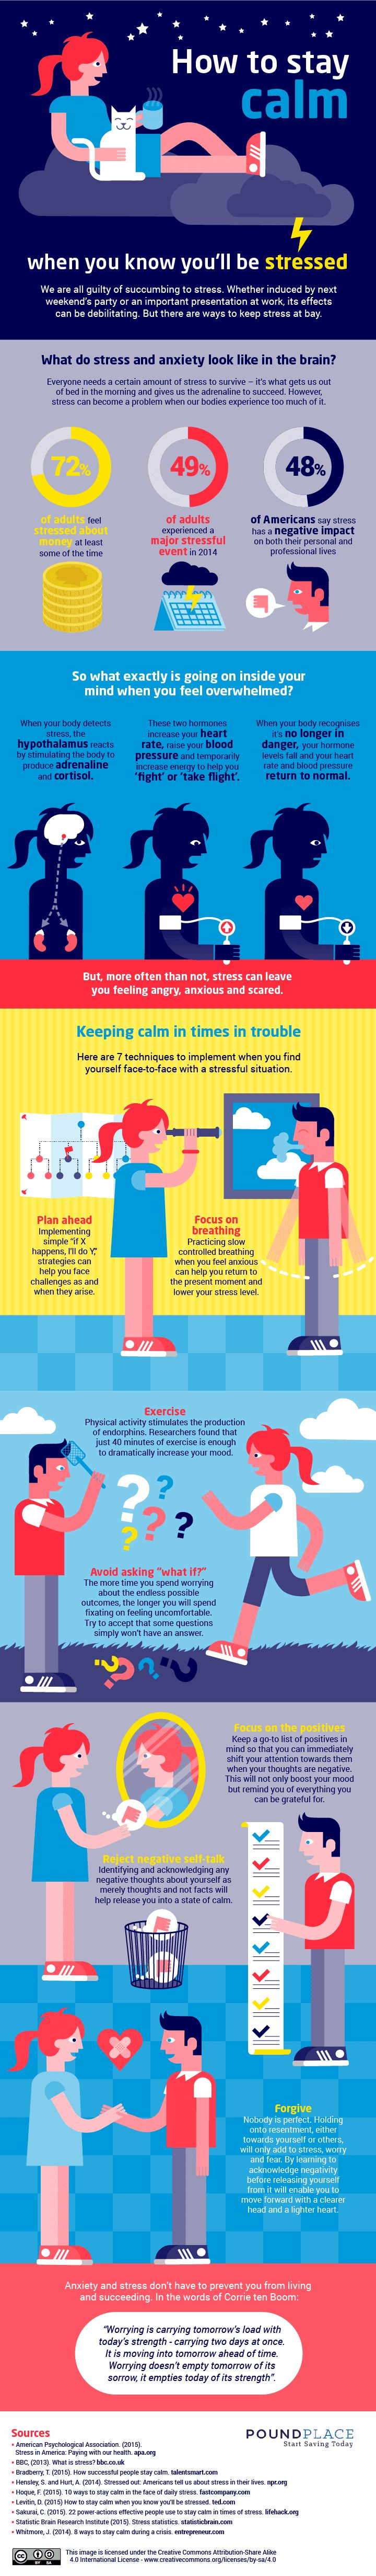 How To Stay Calm When You Know You'll Be Stressed - #infographic